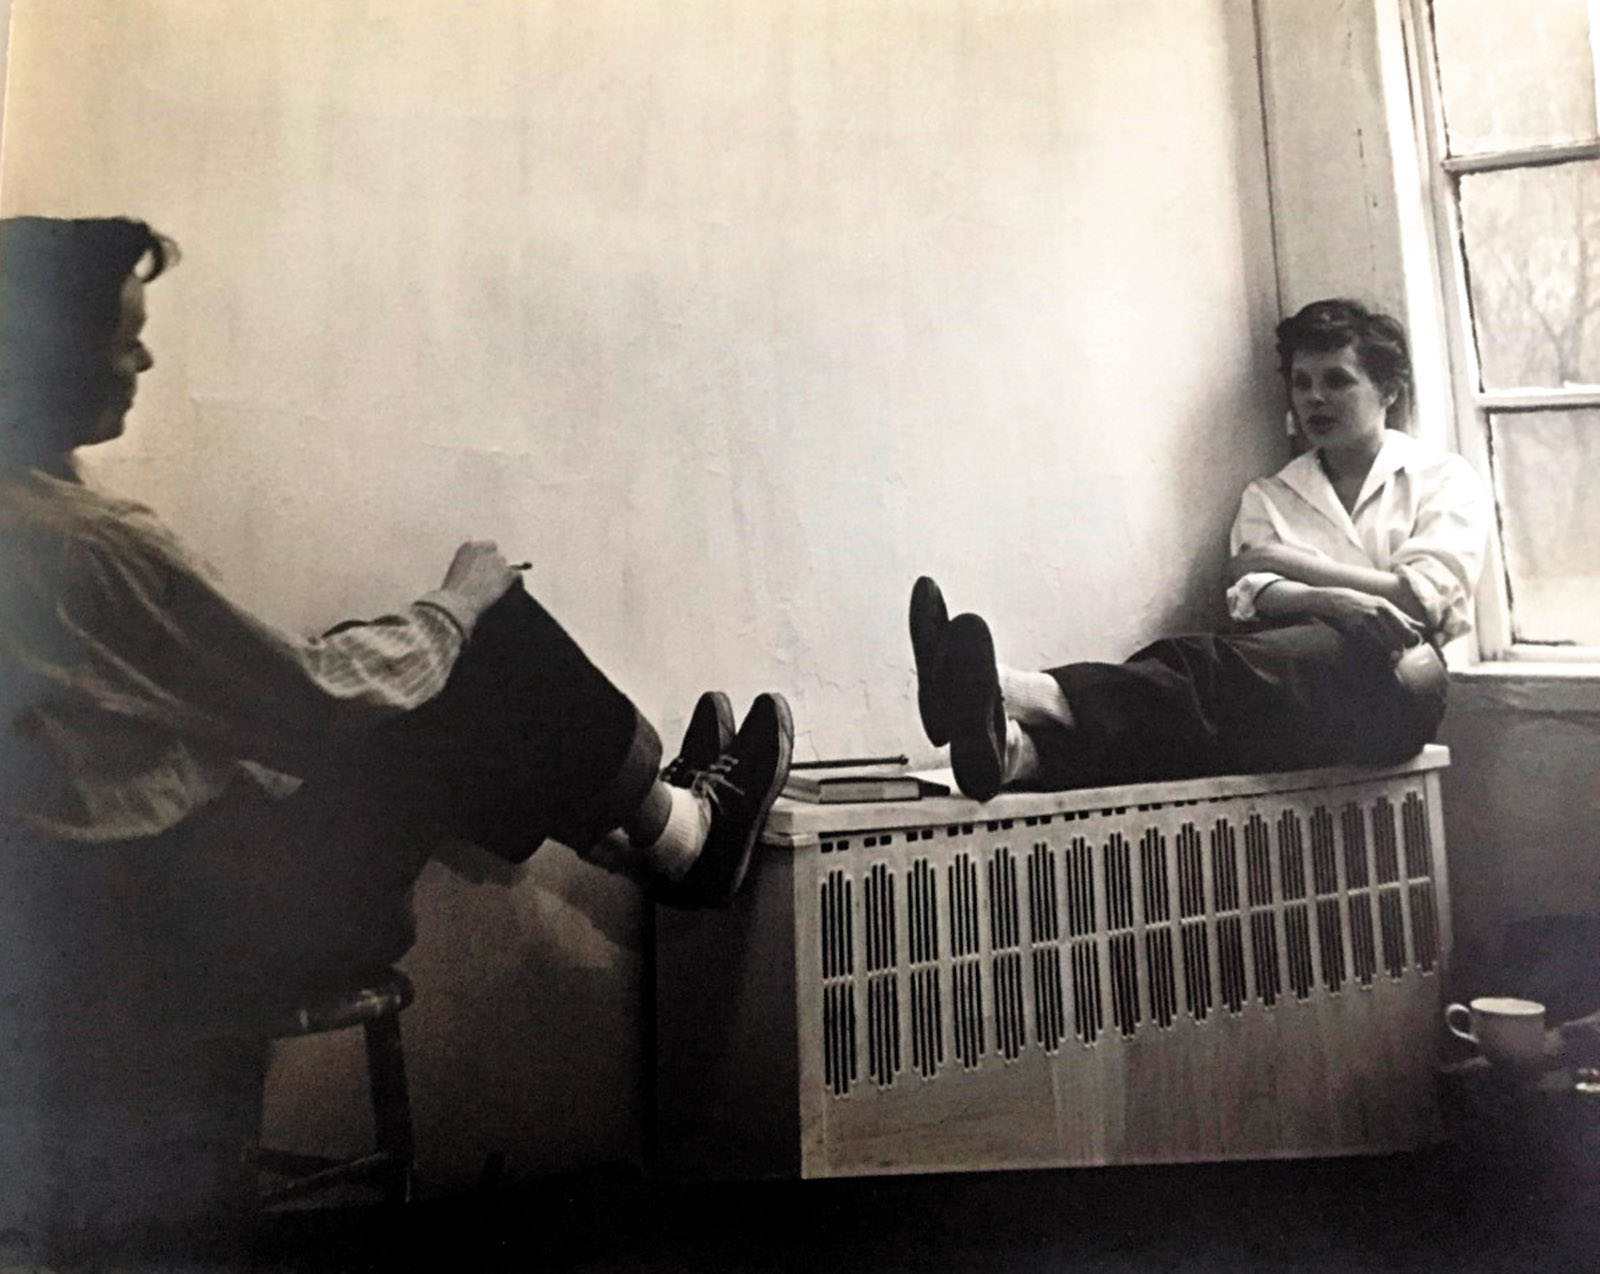 Louise Fitzhugh with France Burke in the apartment they shared, New York City